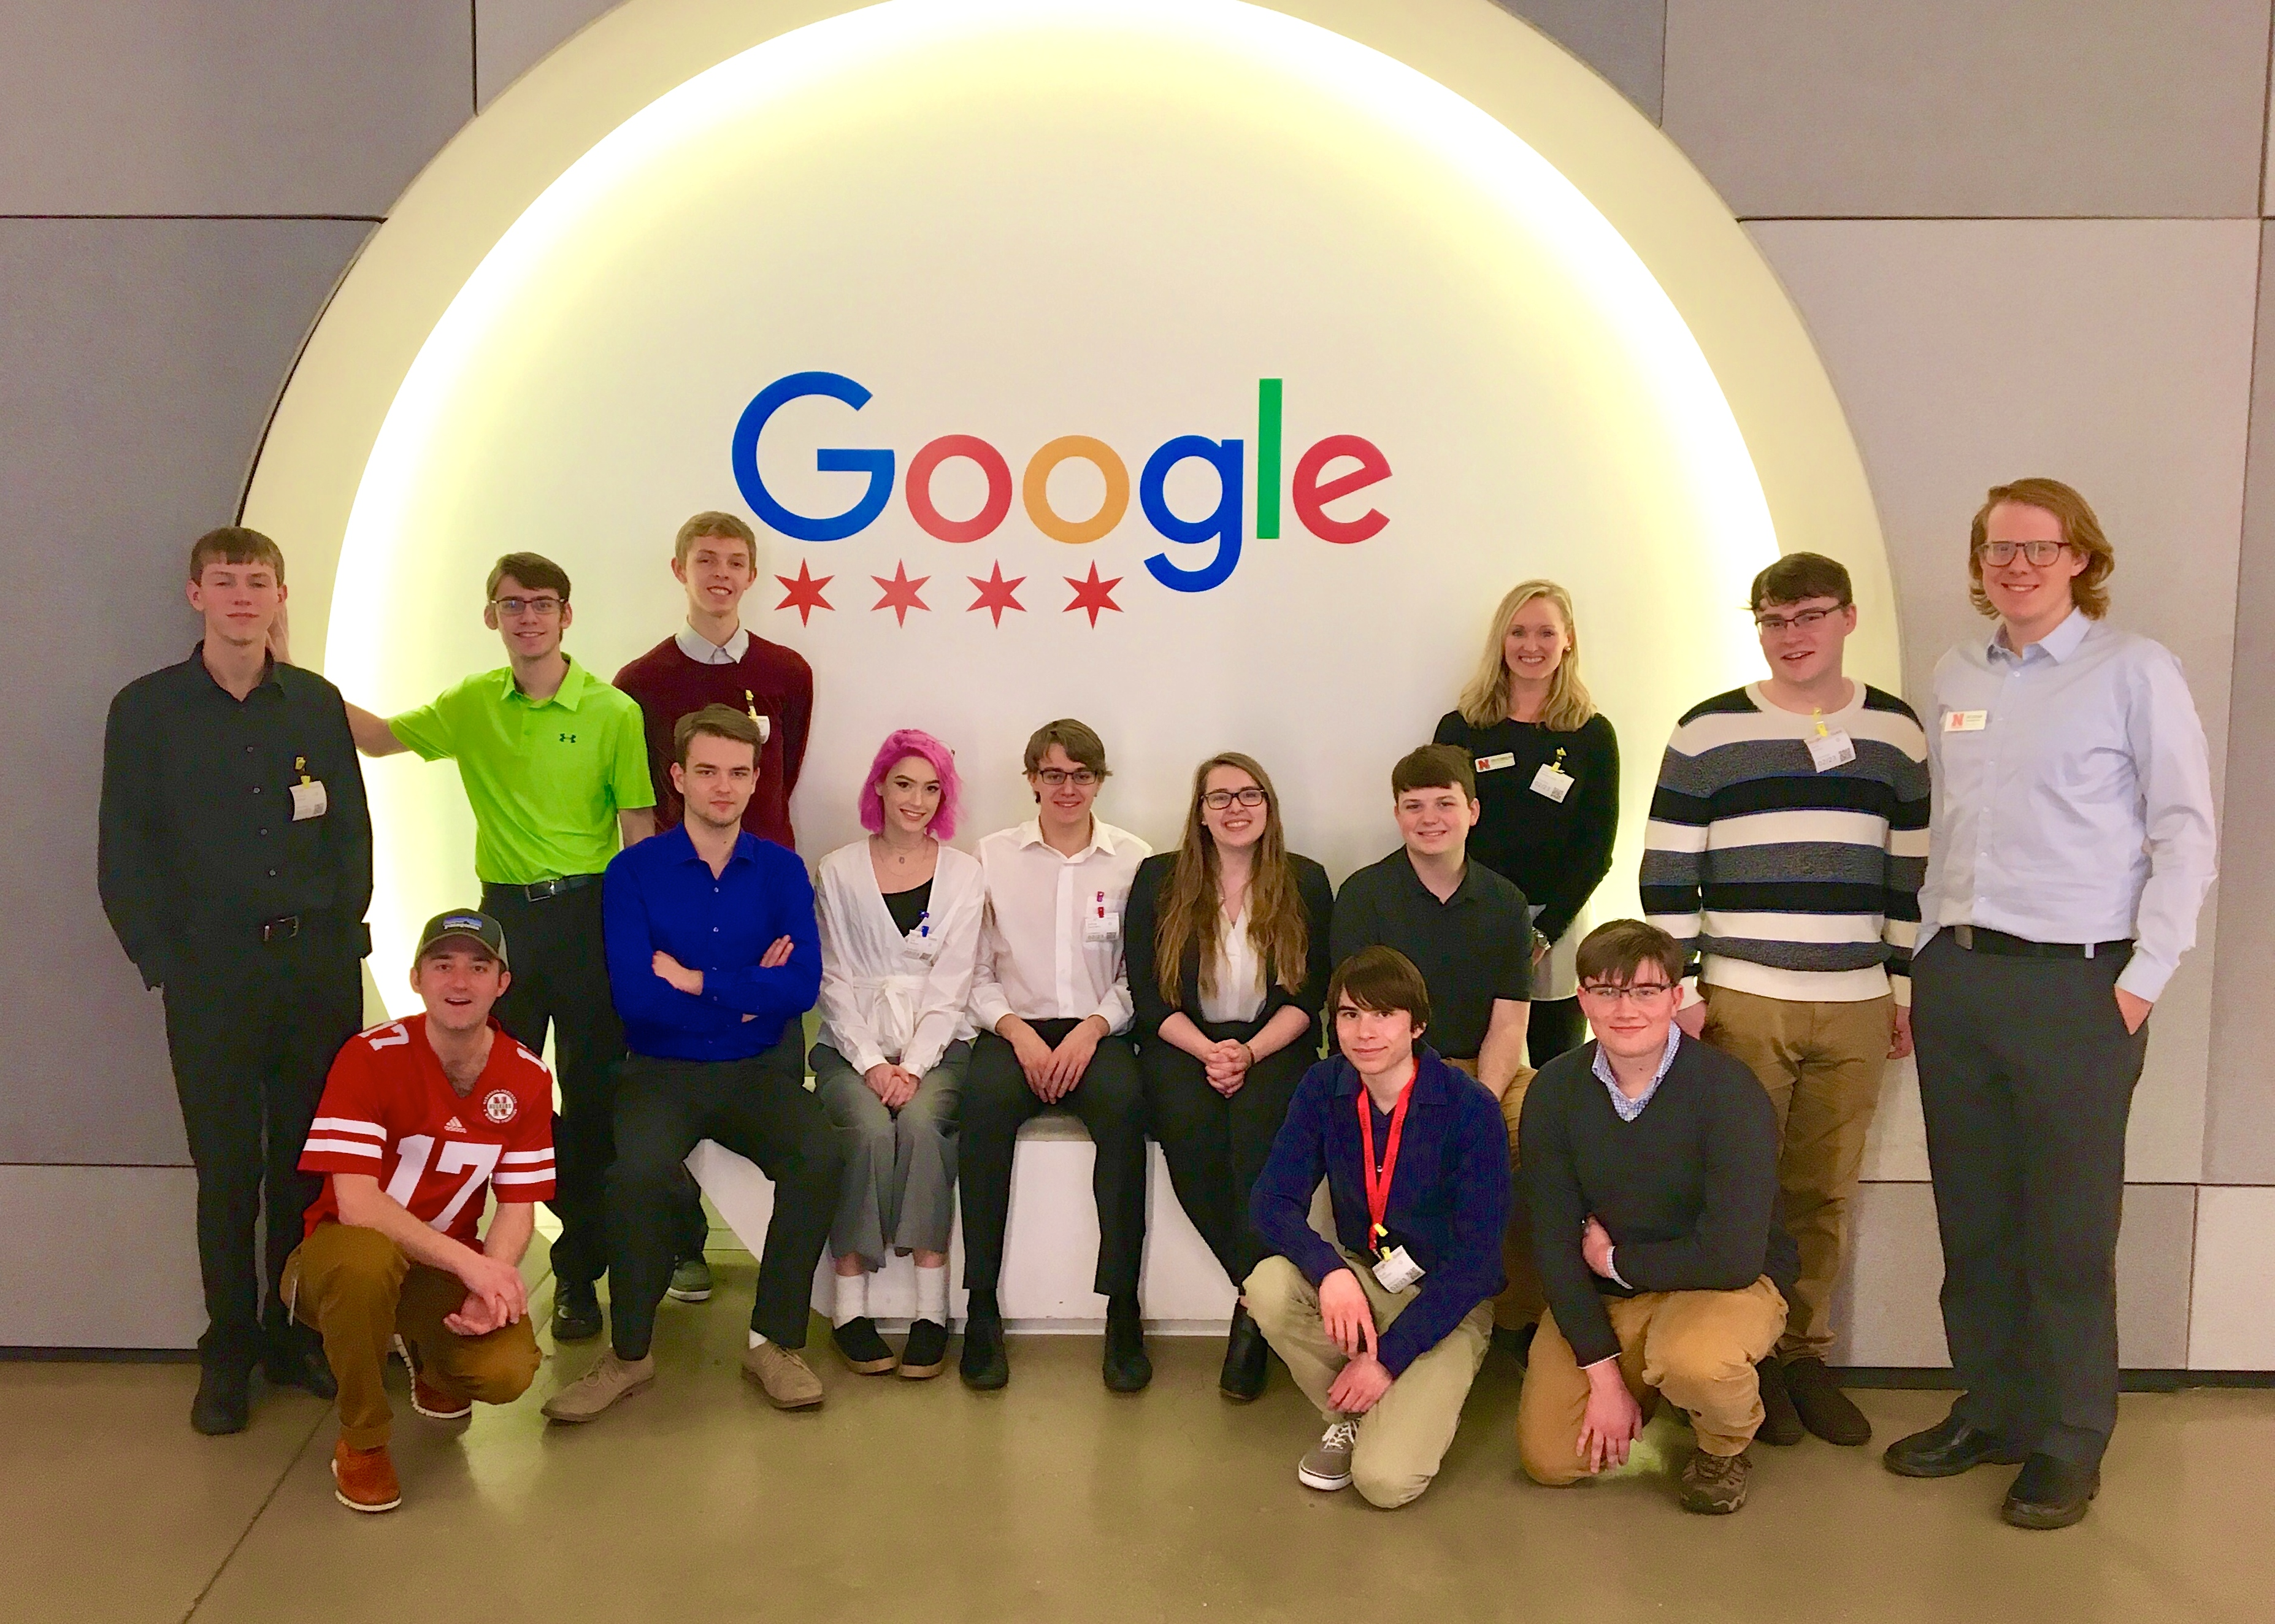 CSE Learning Community students, Recruitment and Retention Coordinator Jenna Huttenmaier, and alumnus Matt Bergh pose together at Google in Chicago.